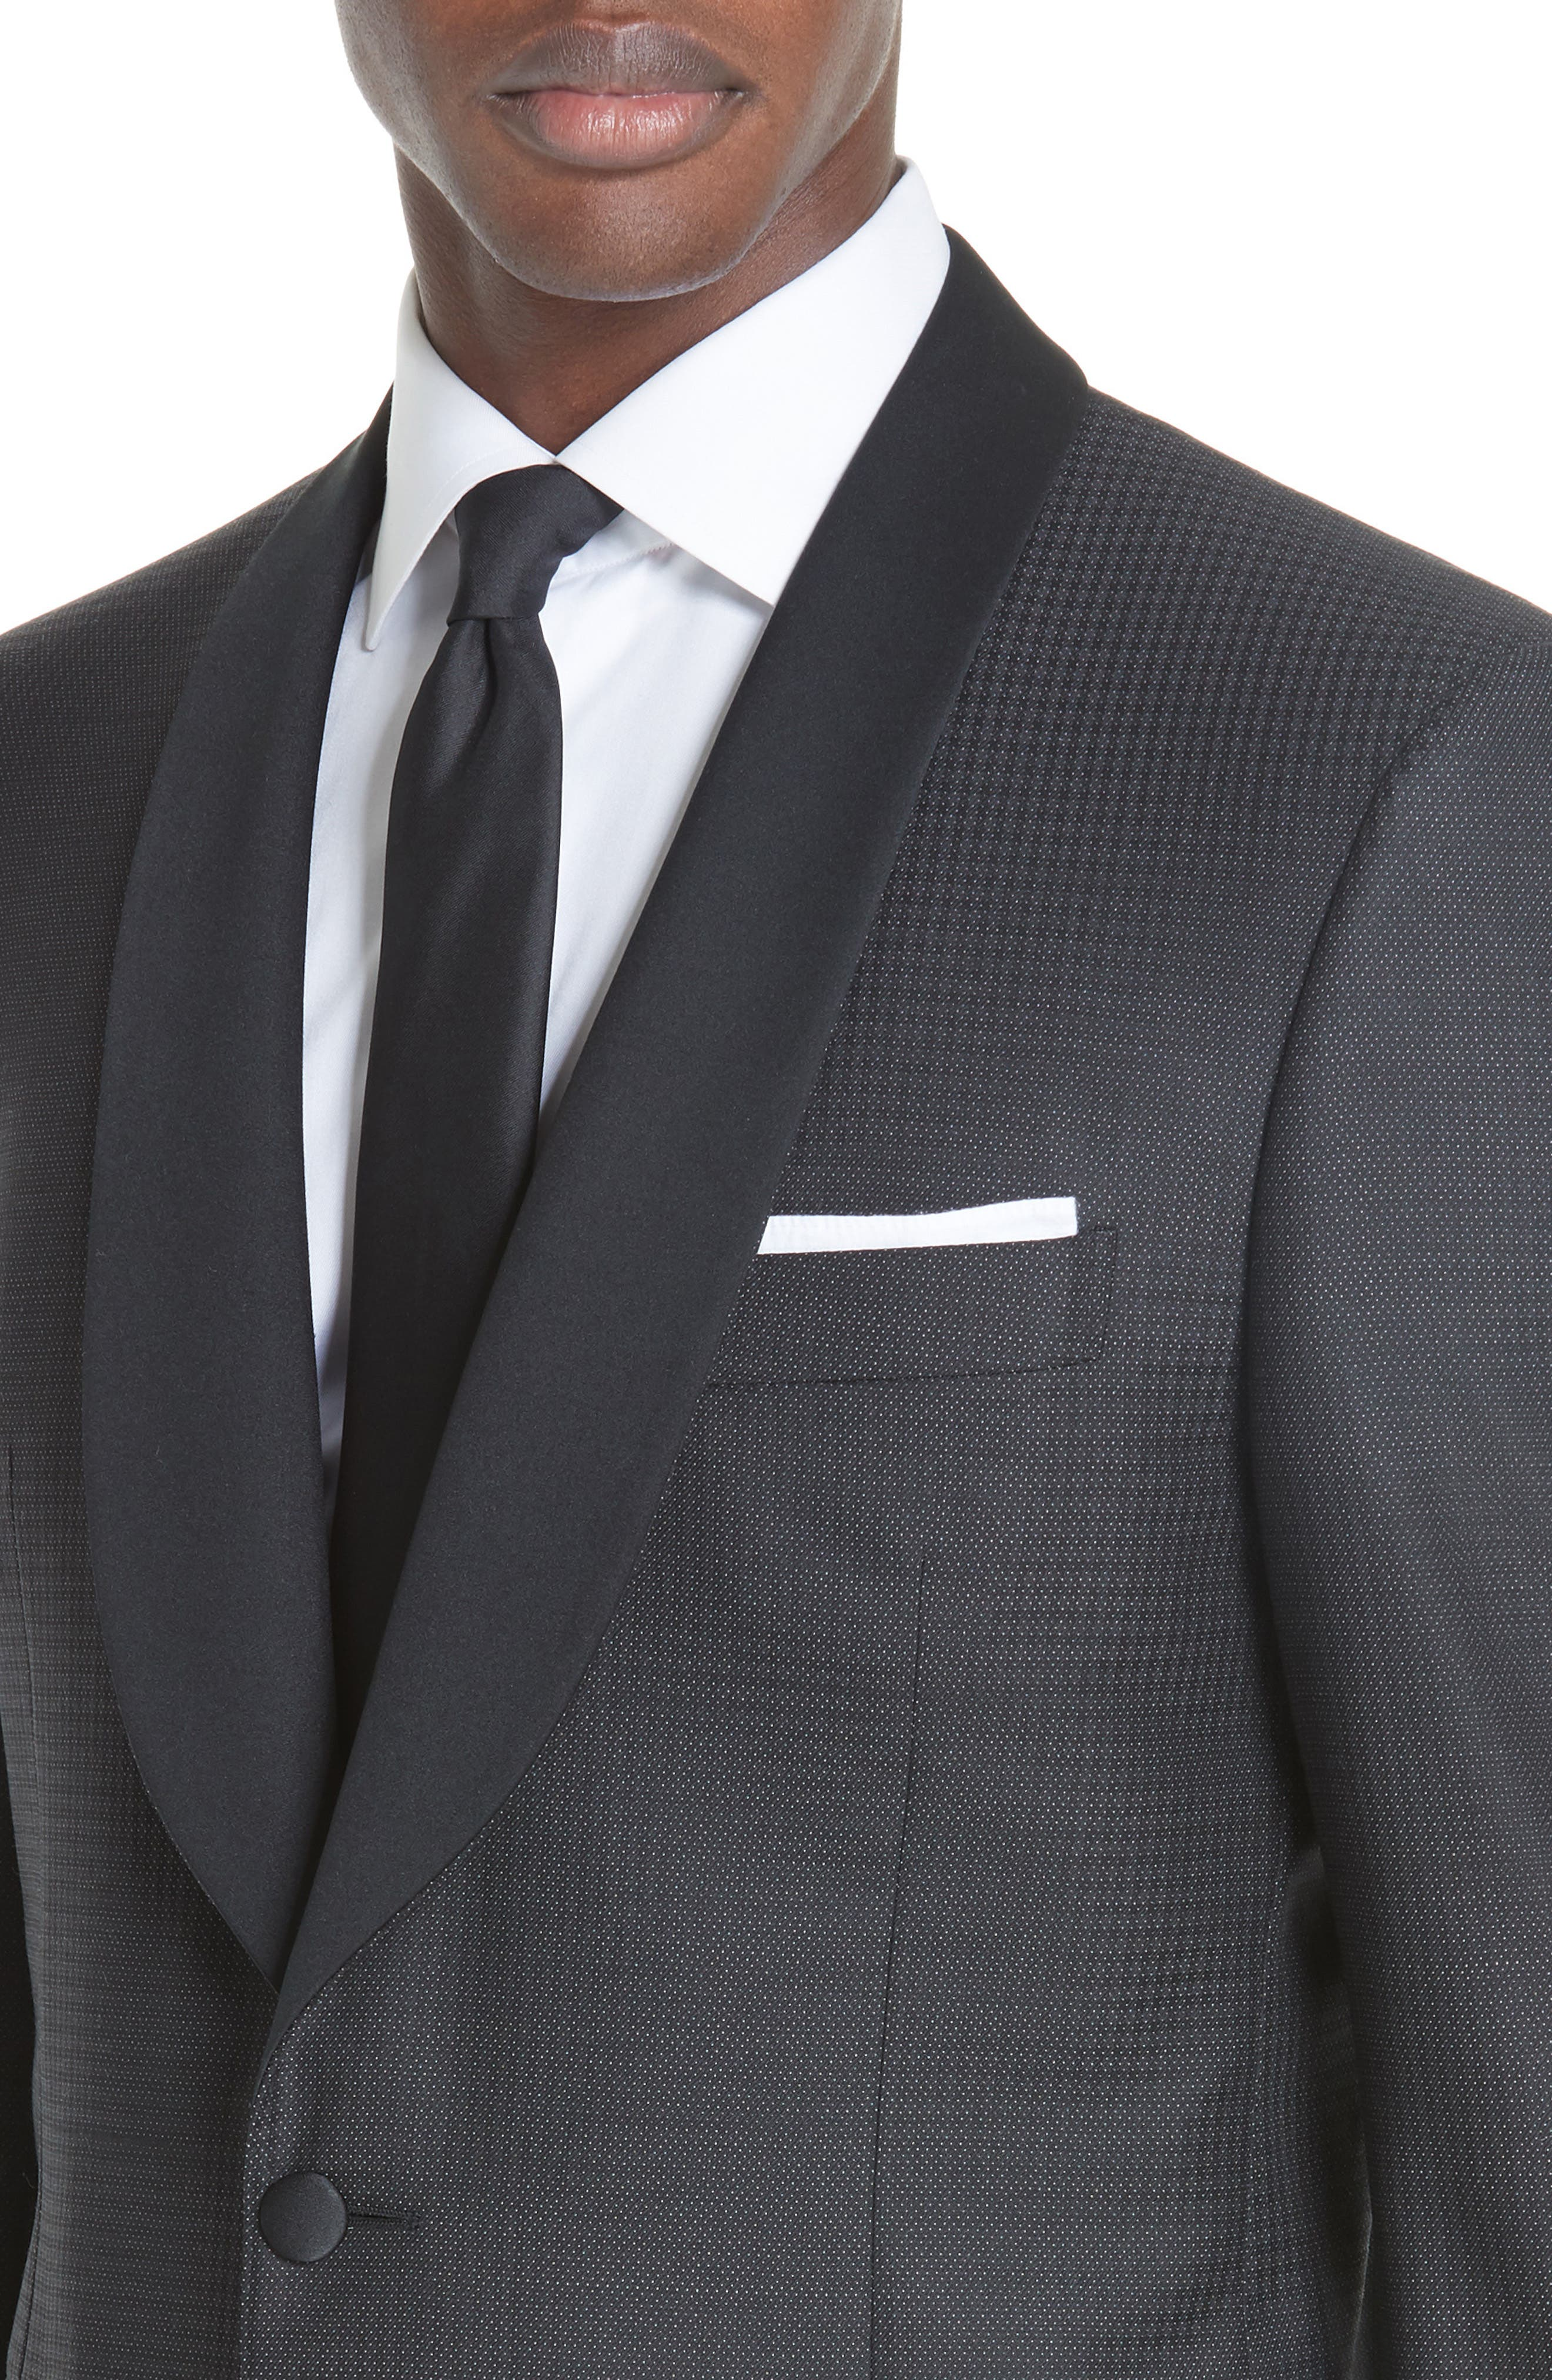 CANALI, Classic Fit Wool Tuxedo, Alternate thumbnail 4, color, CHARCOAL